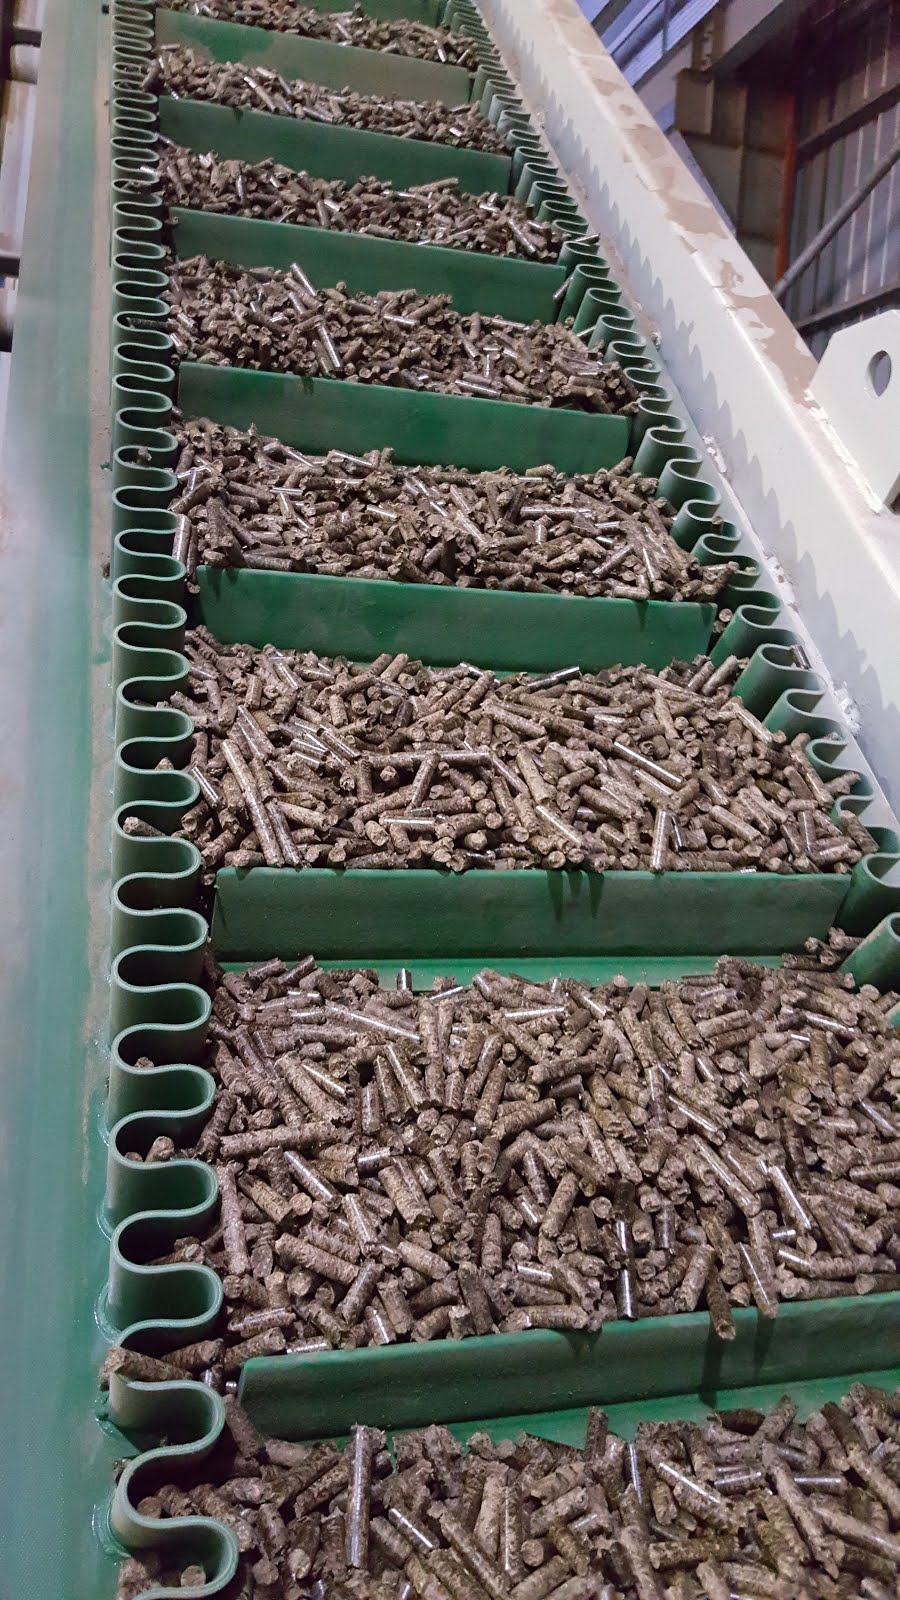 Pellet on Conveyor